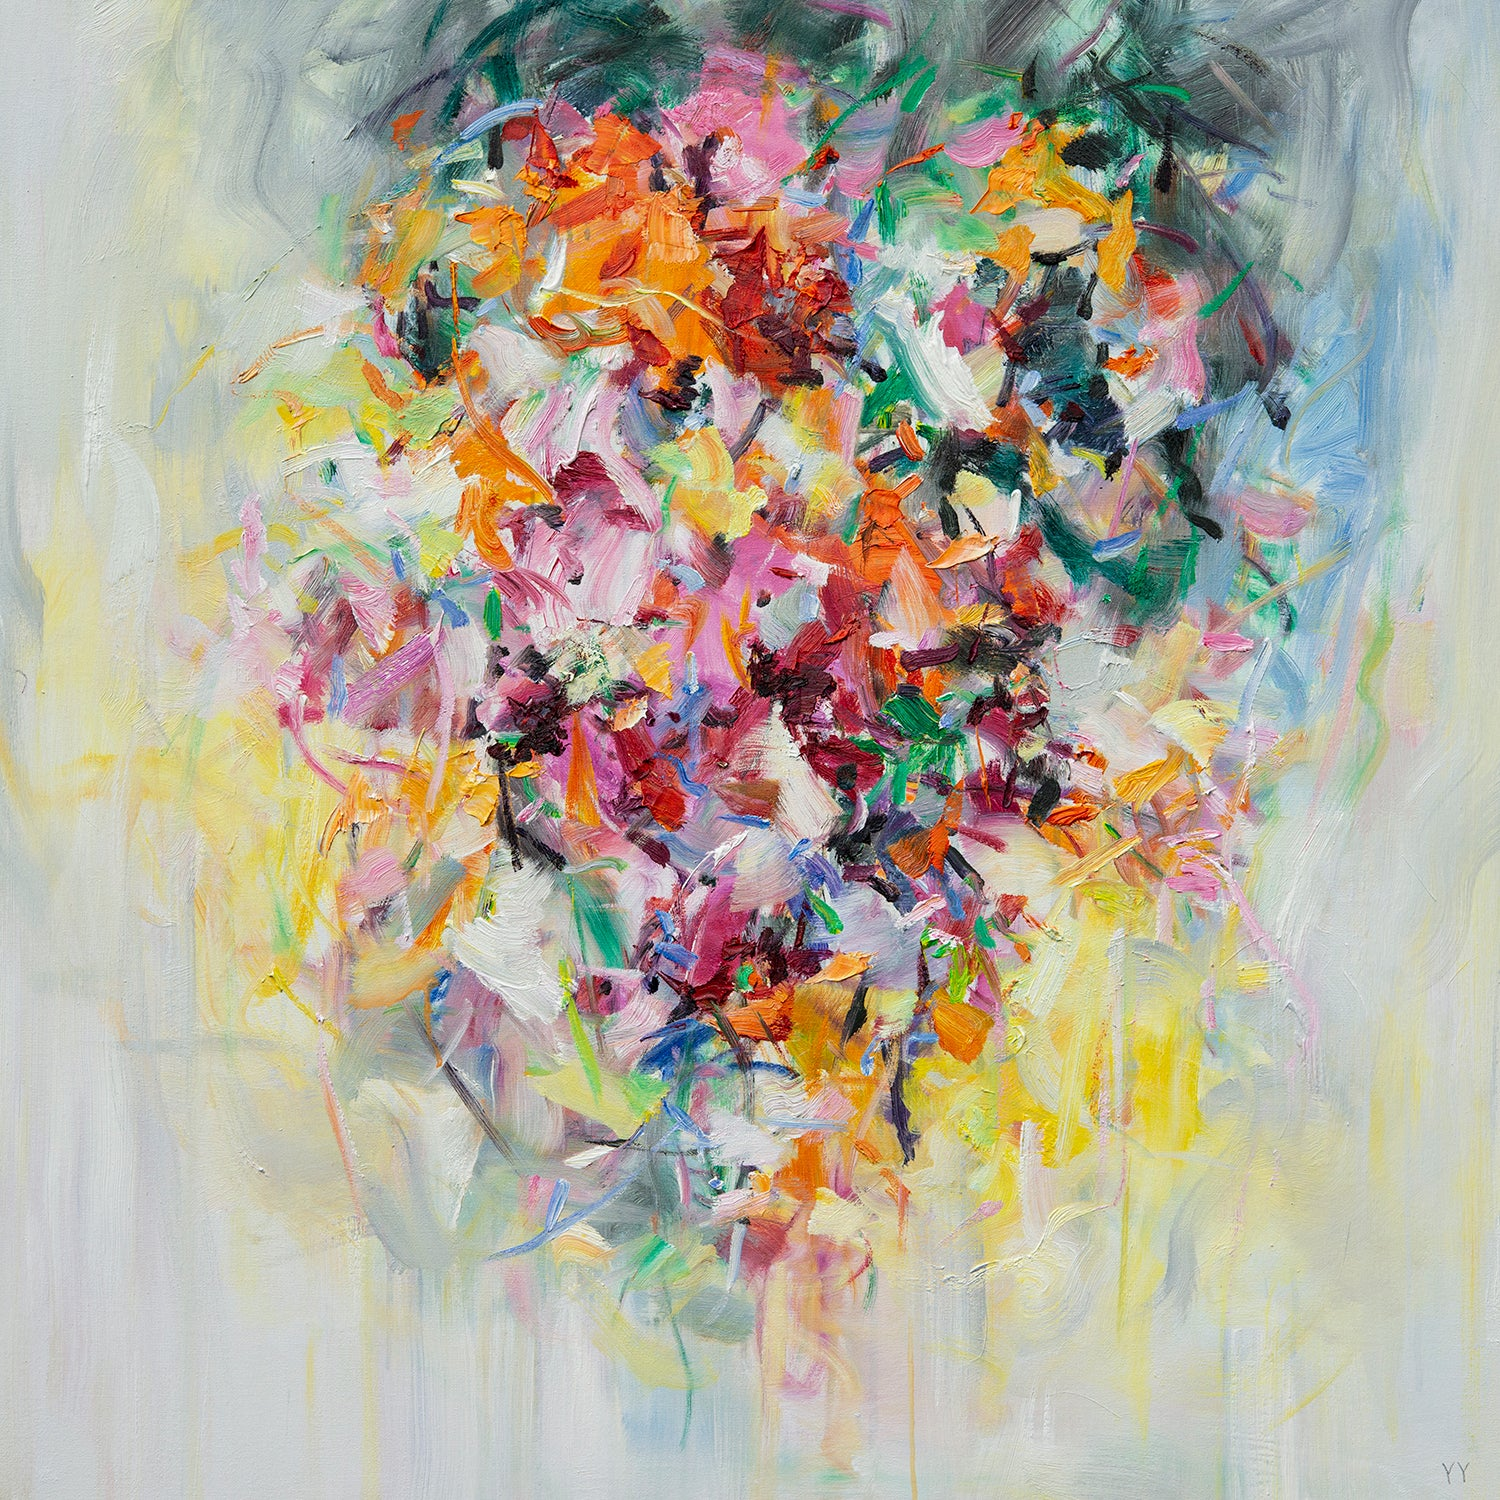 Abstract expressionist oil painting, Yangyang Pan, Flowers on the Wall